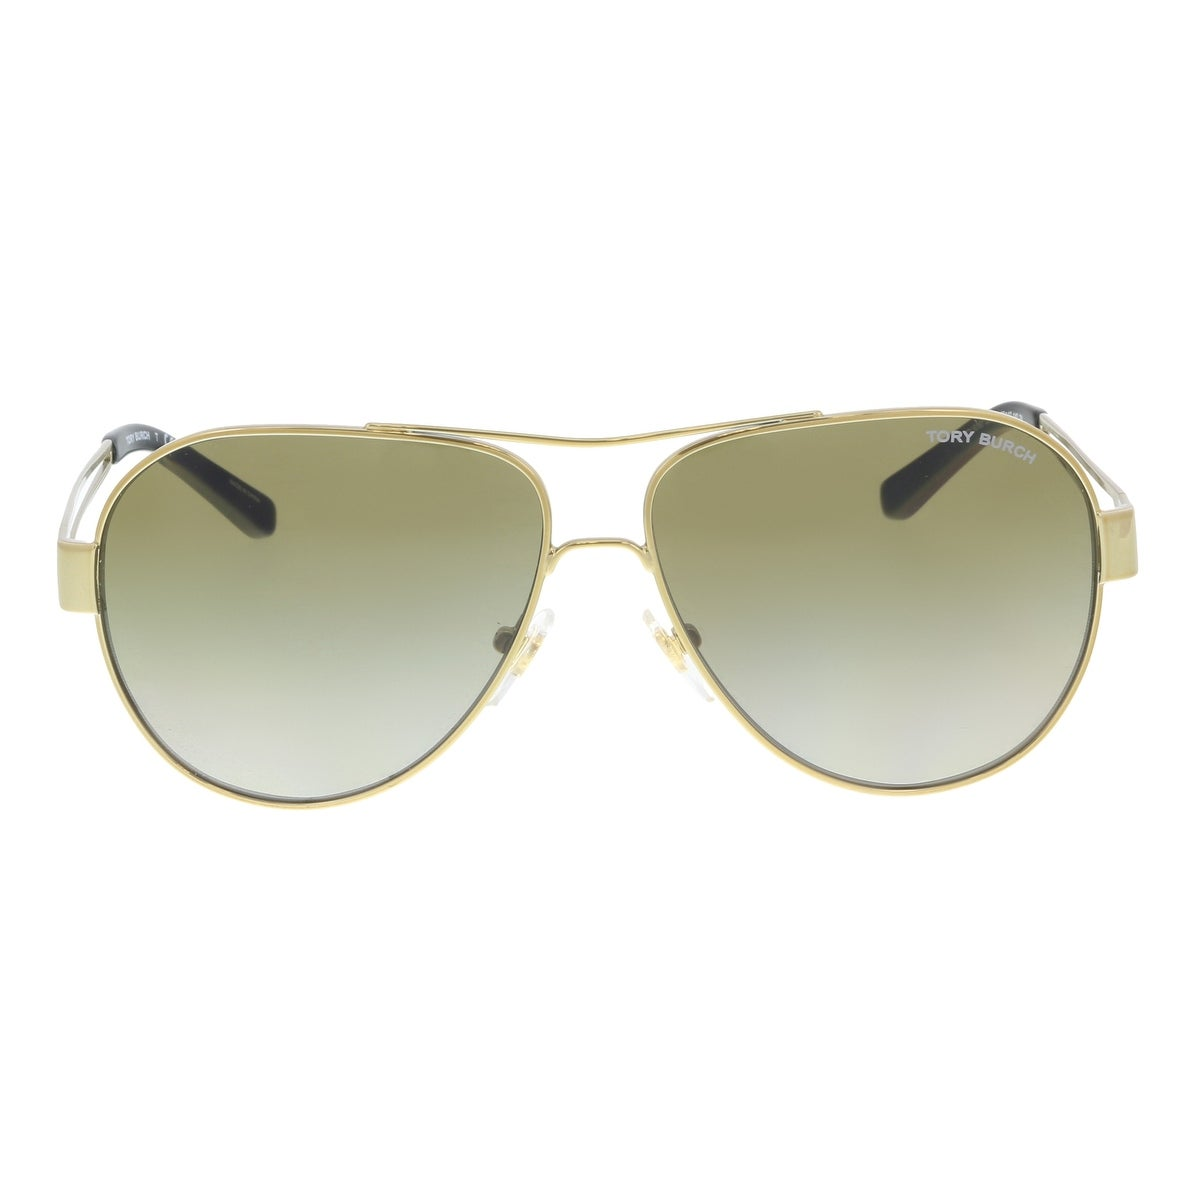 5d076446f7 Shop Tory Burch TY6060 304113 Gold Aviator Sunglasses - 55-12-140 - Free  Shipping Today - Overstock.com - 21226740